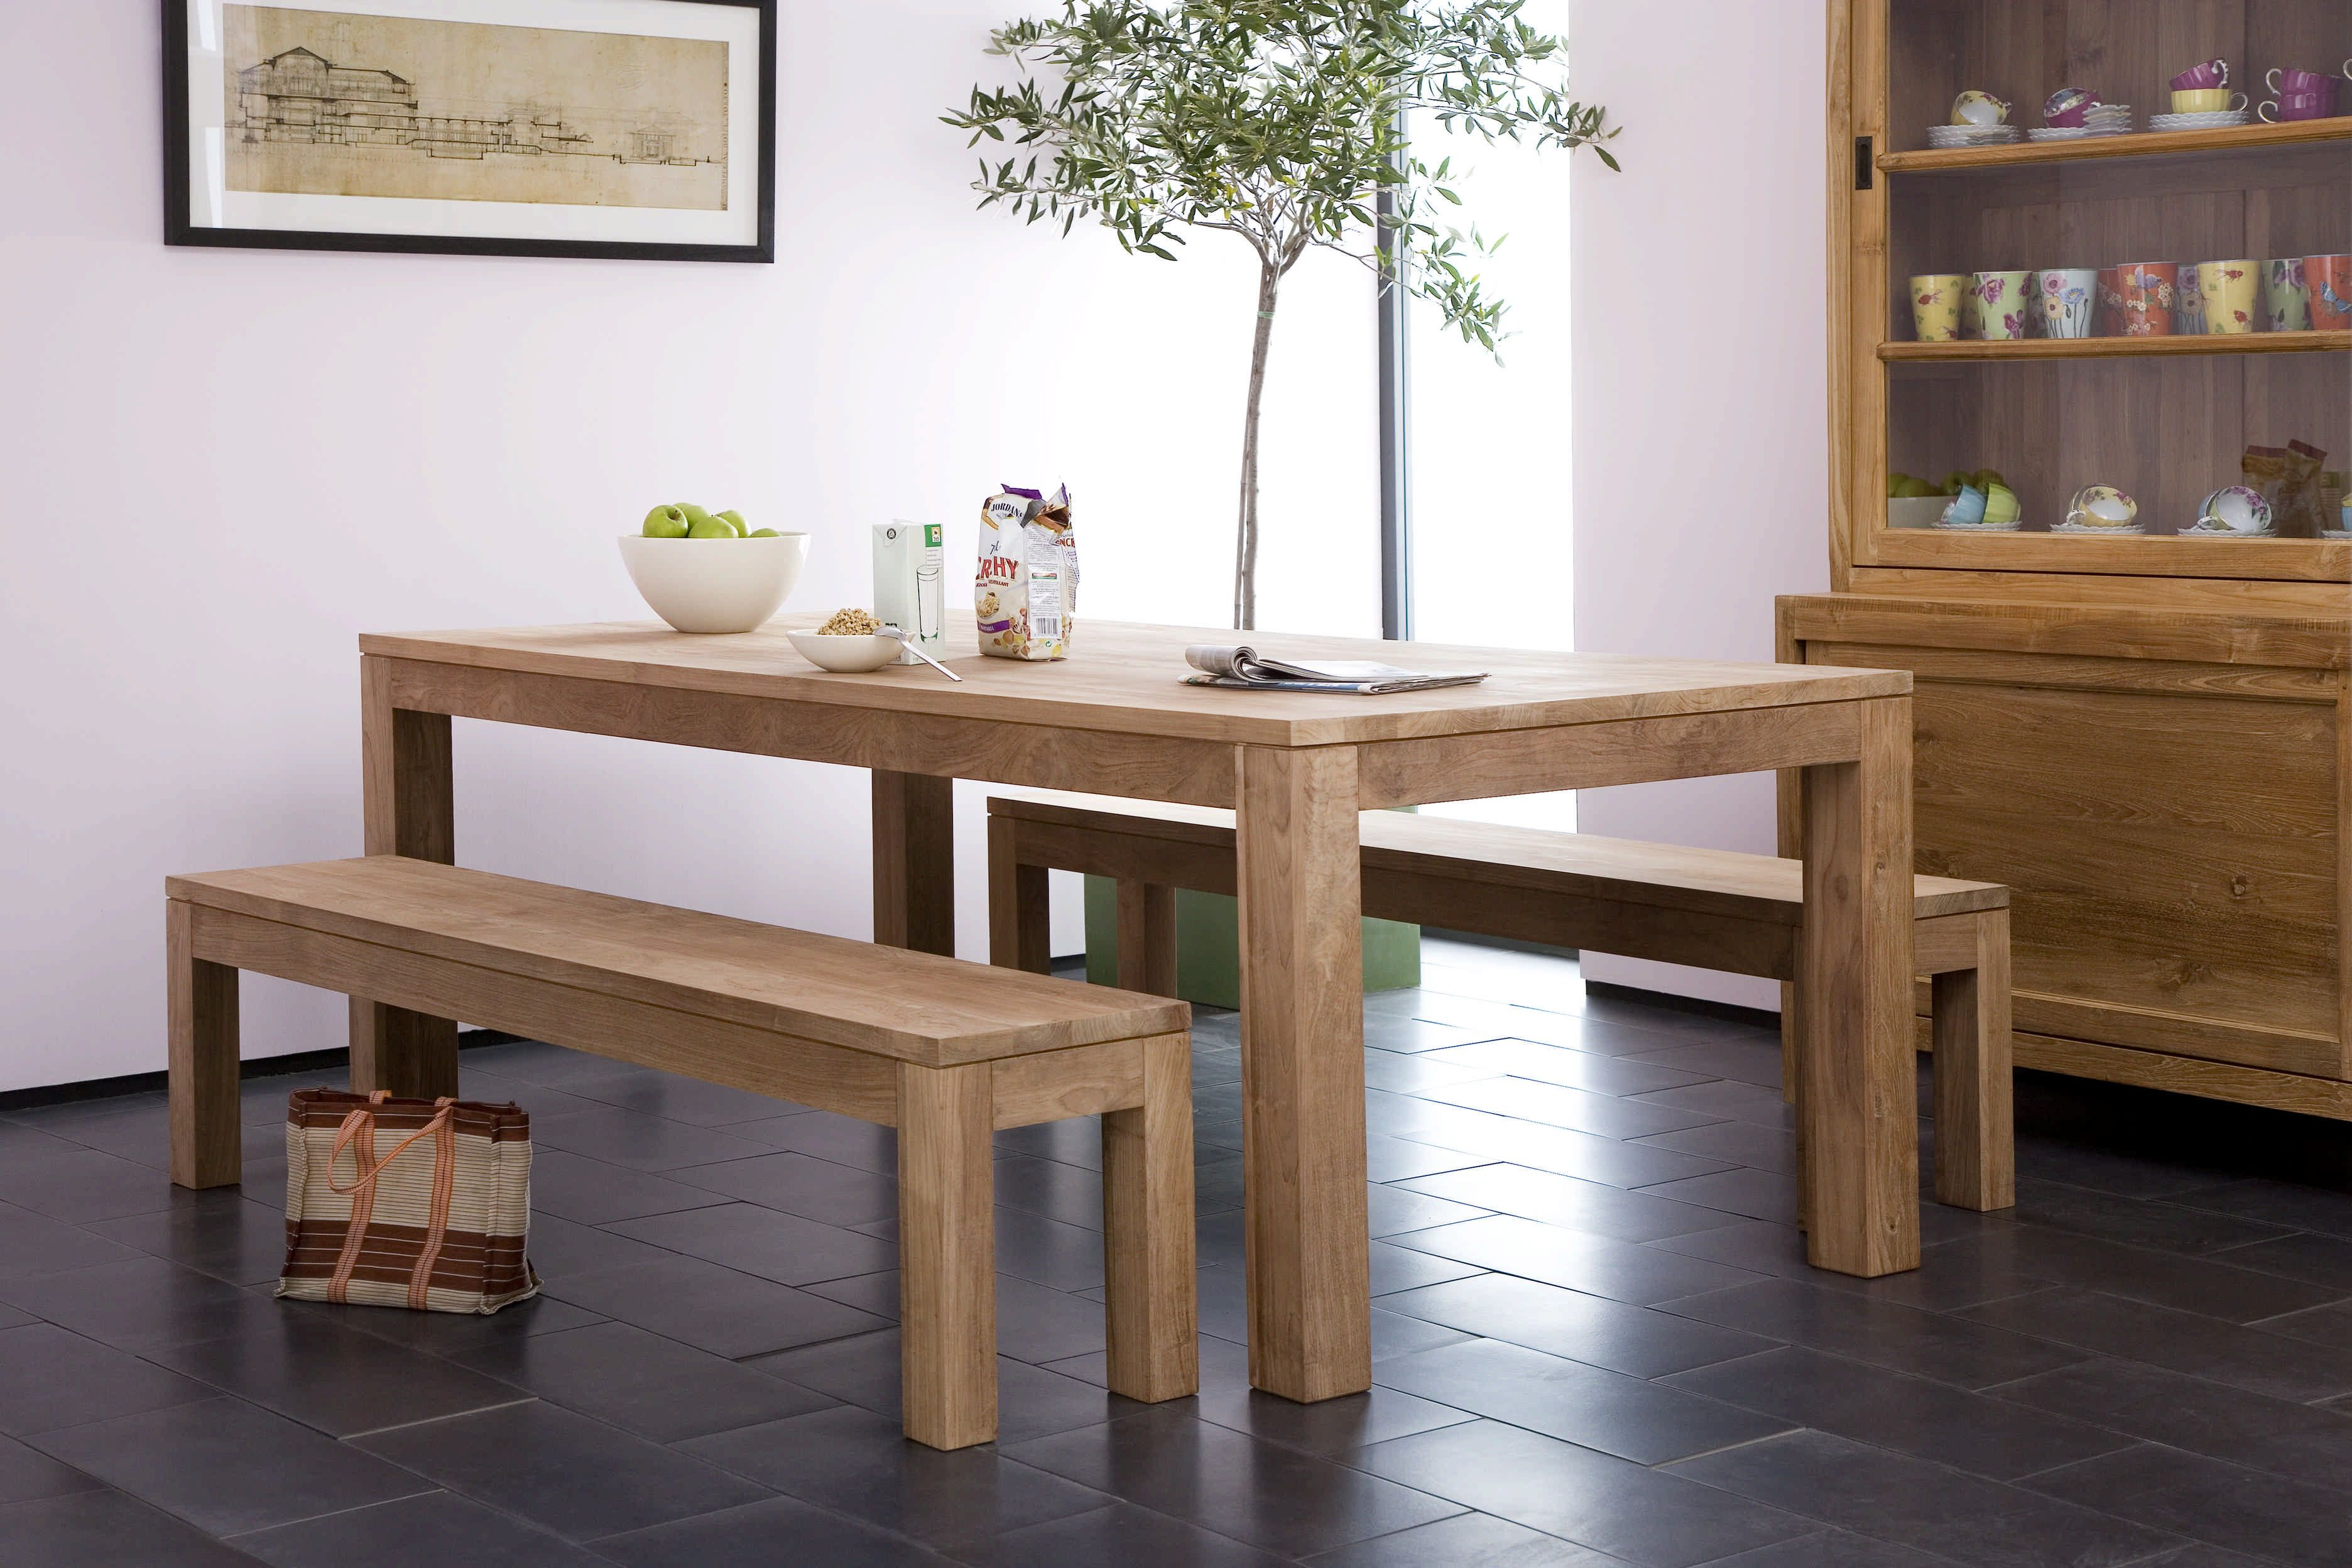 table banquette kitchen modern storage leather seats wood upholstered brown seating bench size with room in of high tufted white padded large wooden corner dining full seat metal l ideas benches and tables window back entryway for